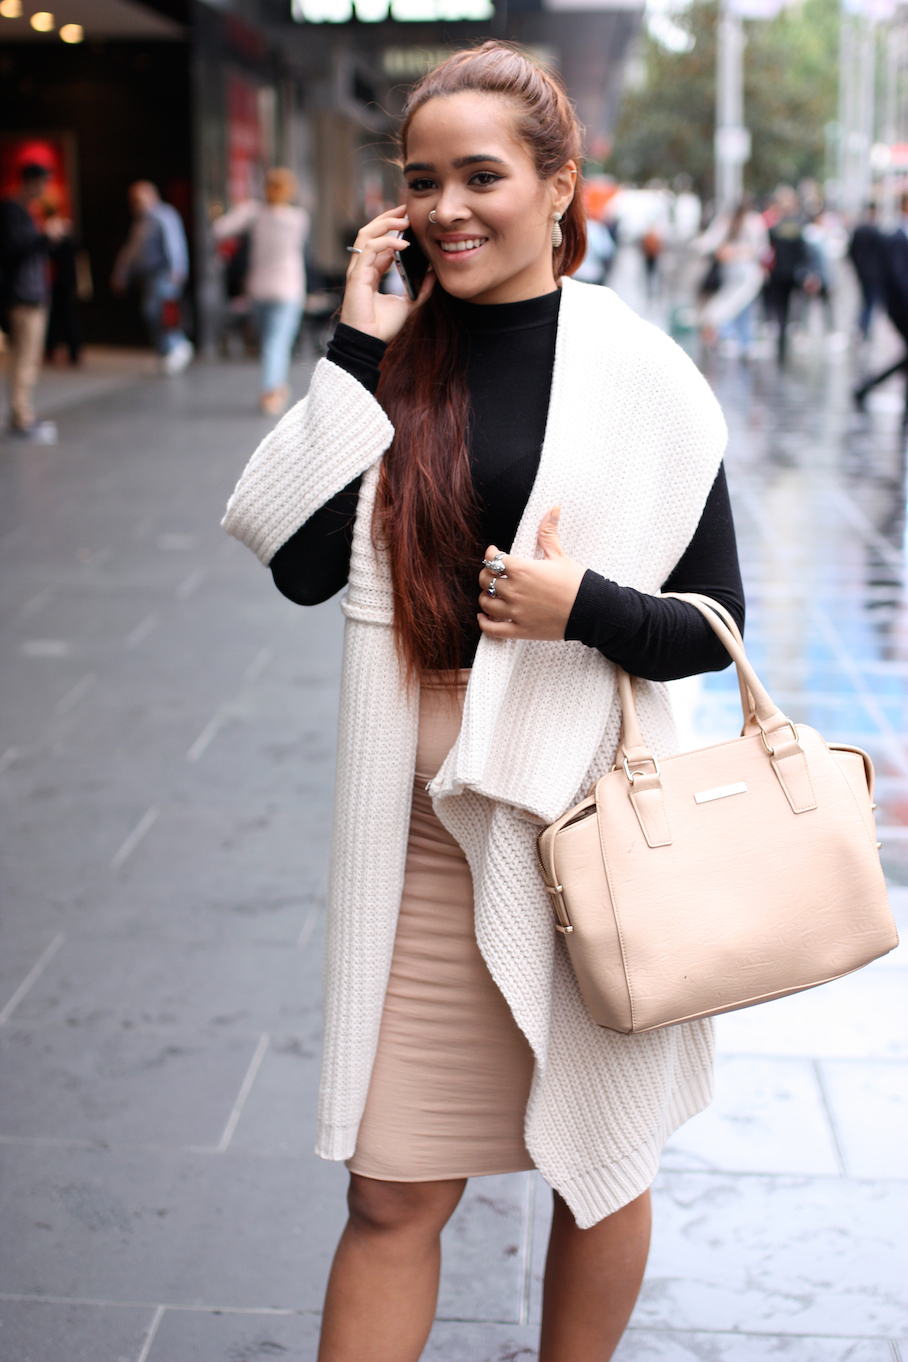 """Vic: Katie, student, Melbourne CBD. """"I love a high waisted skirt and stylish crop top. always my go to."""" Photo: <a href=""""http://www.marythamphotography.weebly.com/"""" target=""""_blank"""">Mary Tham </a>"""